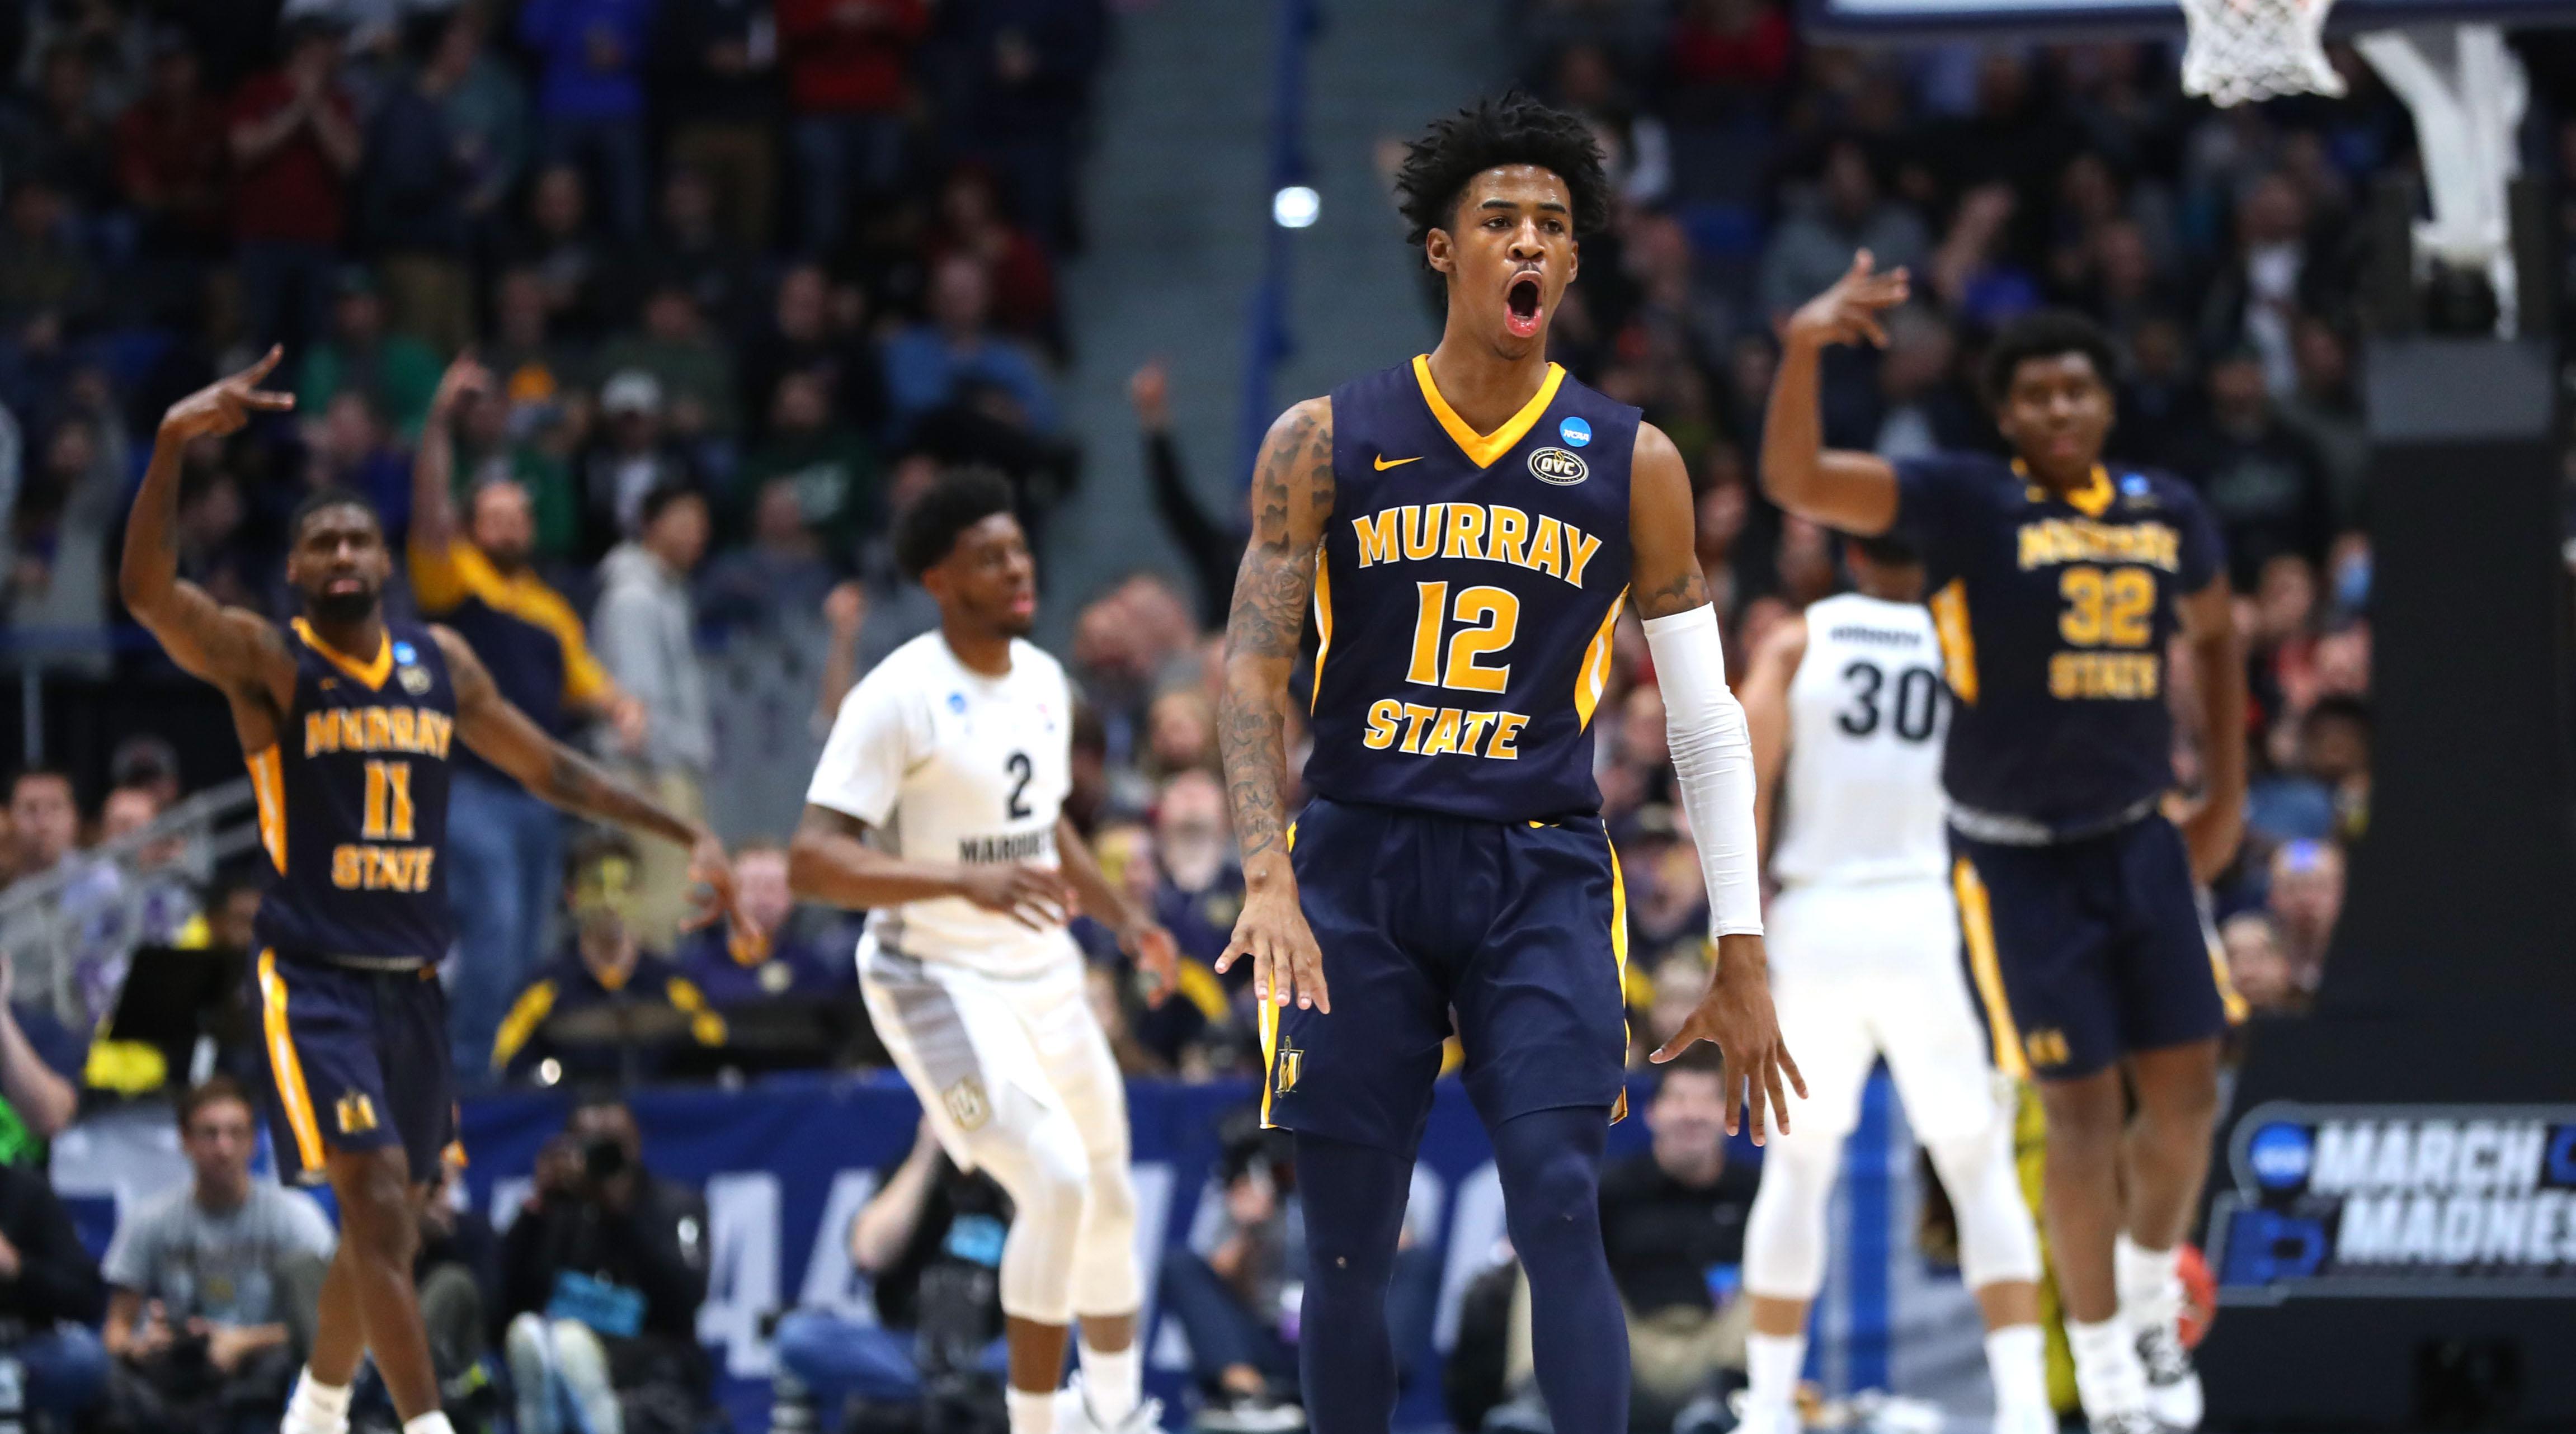 March Madness 2019 upsets